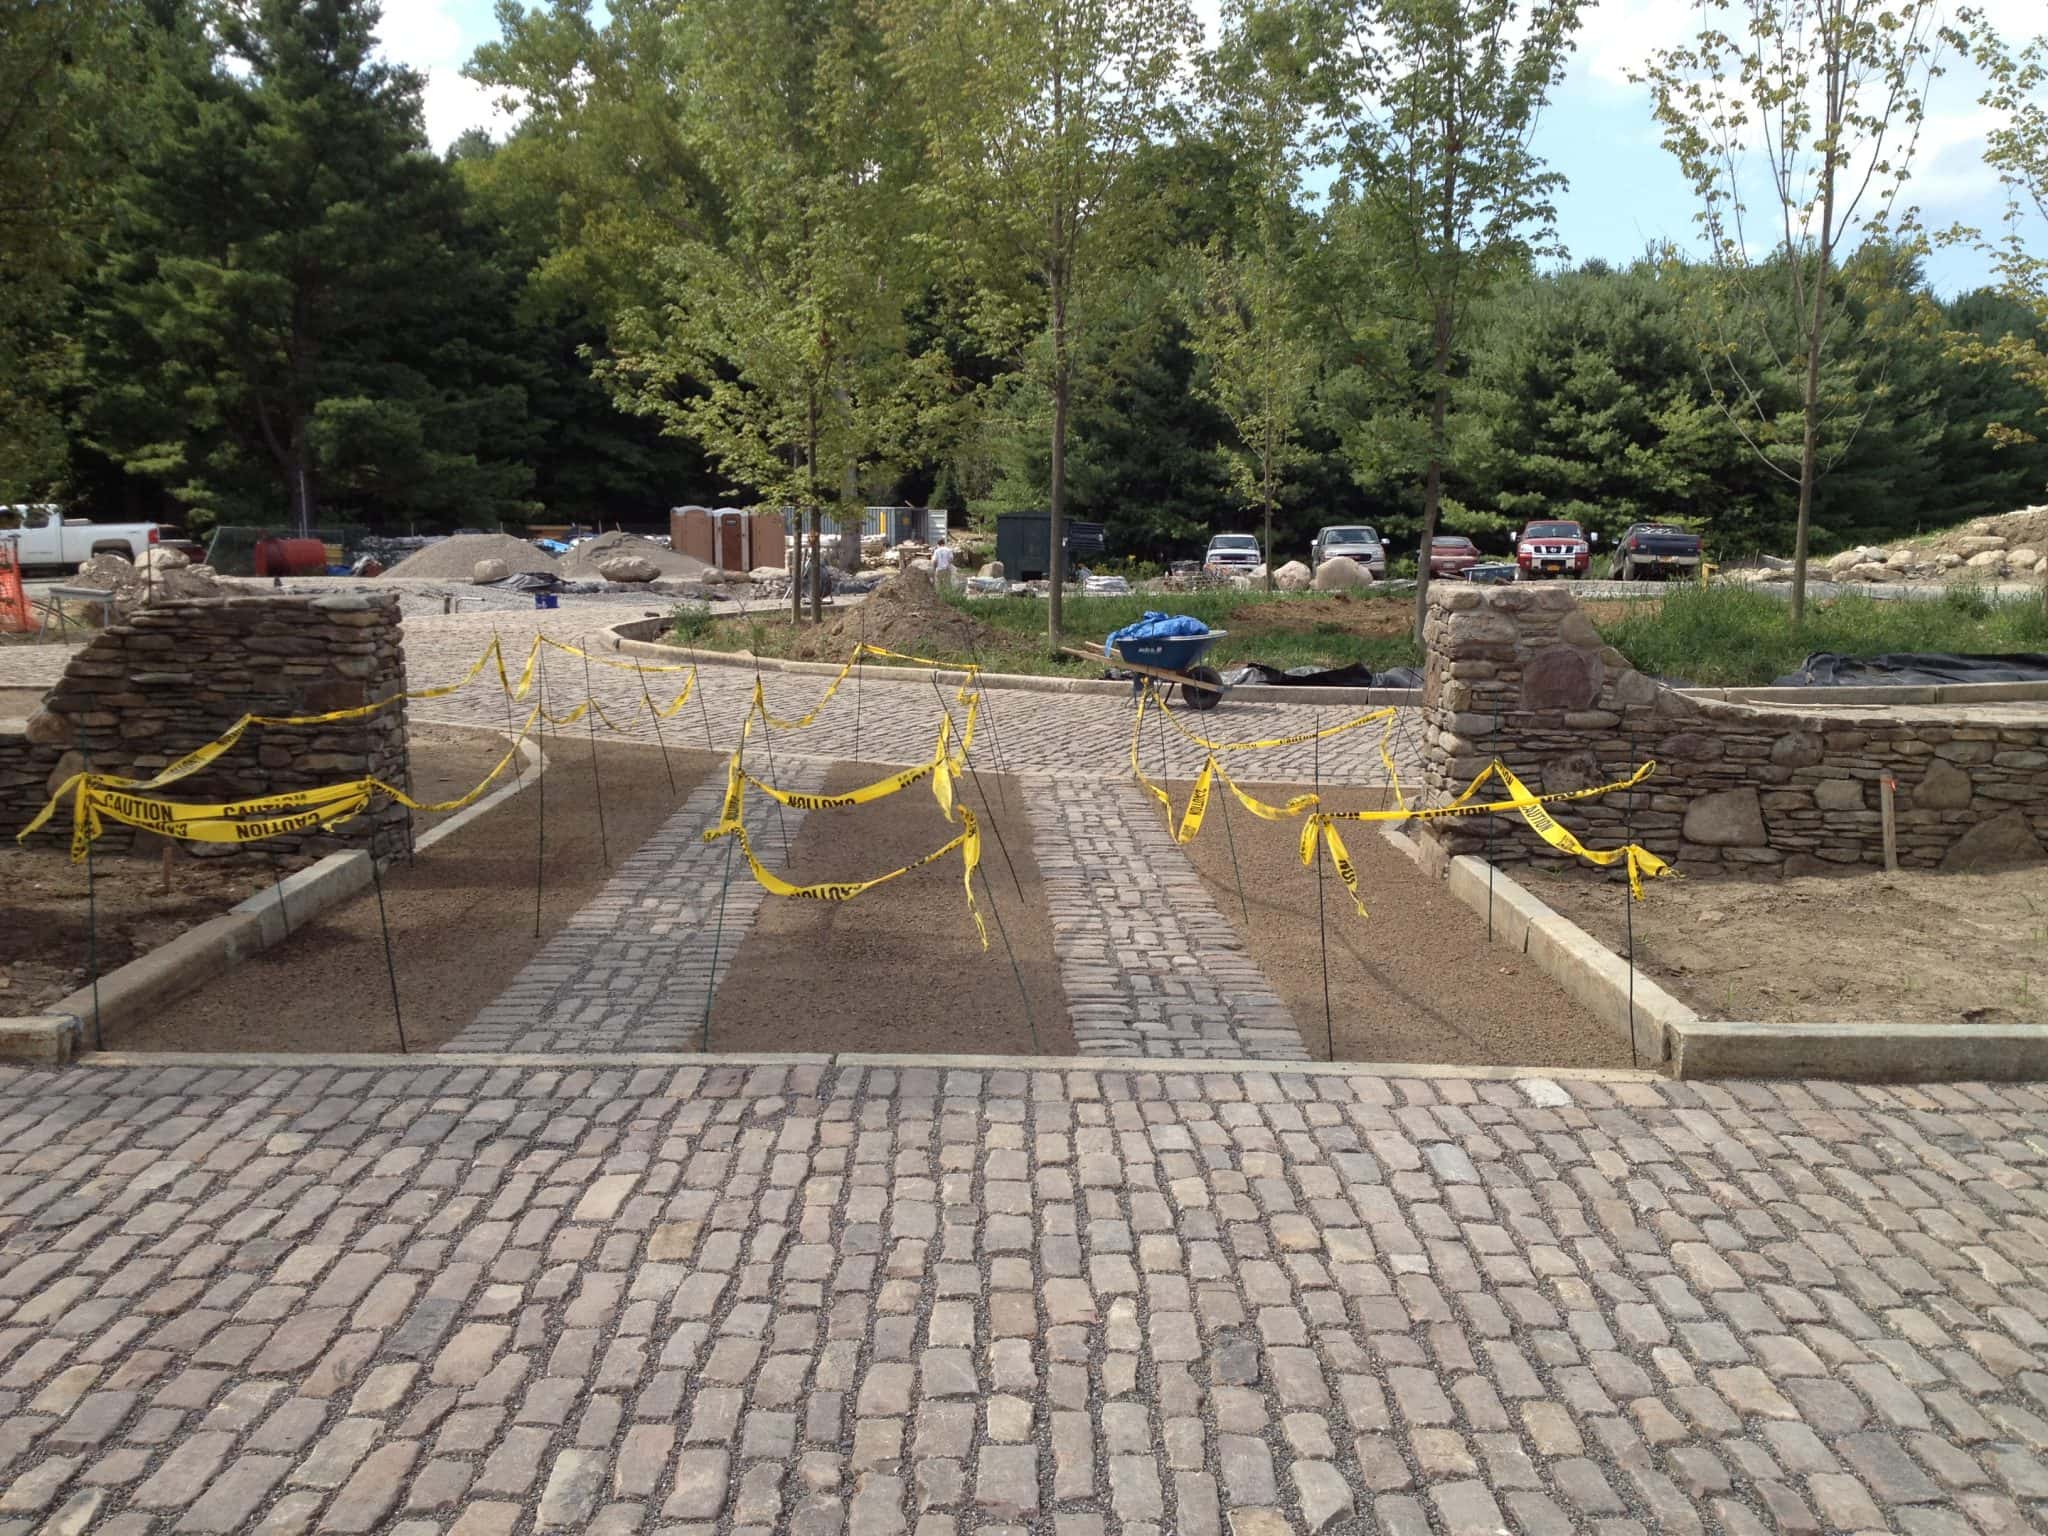 You can see an Old English Cobblestone paved ground in the last phases of contruction.